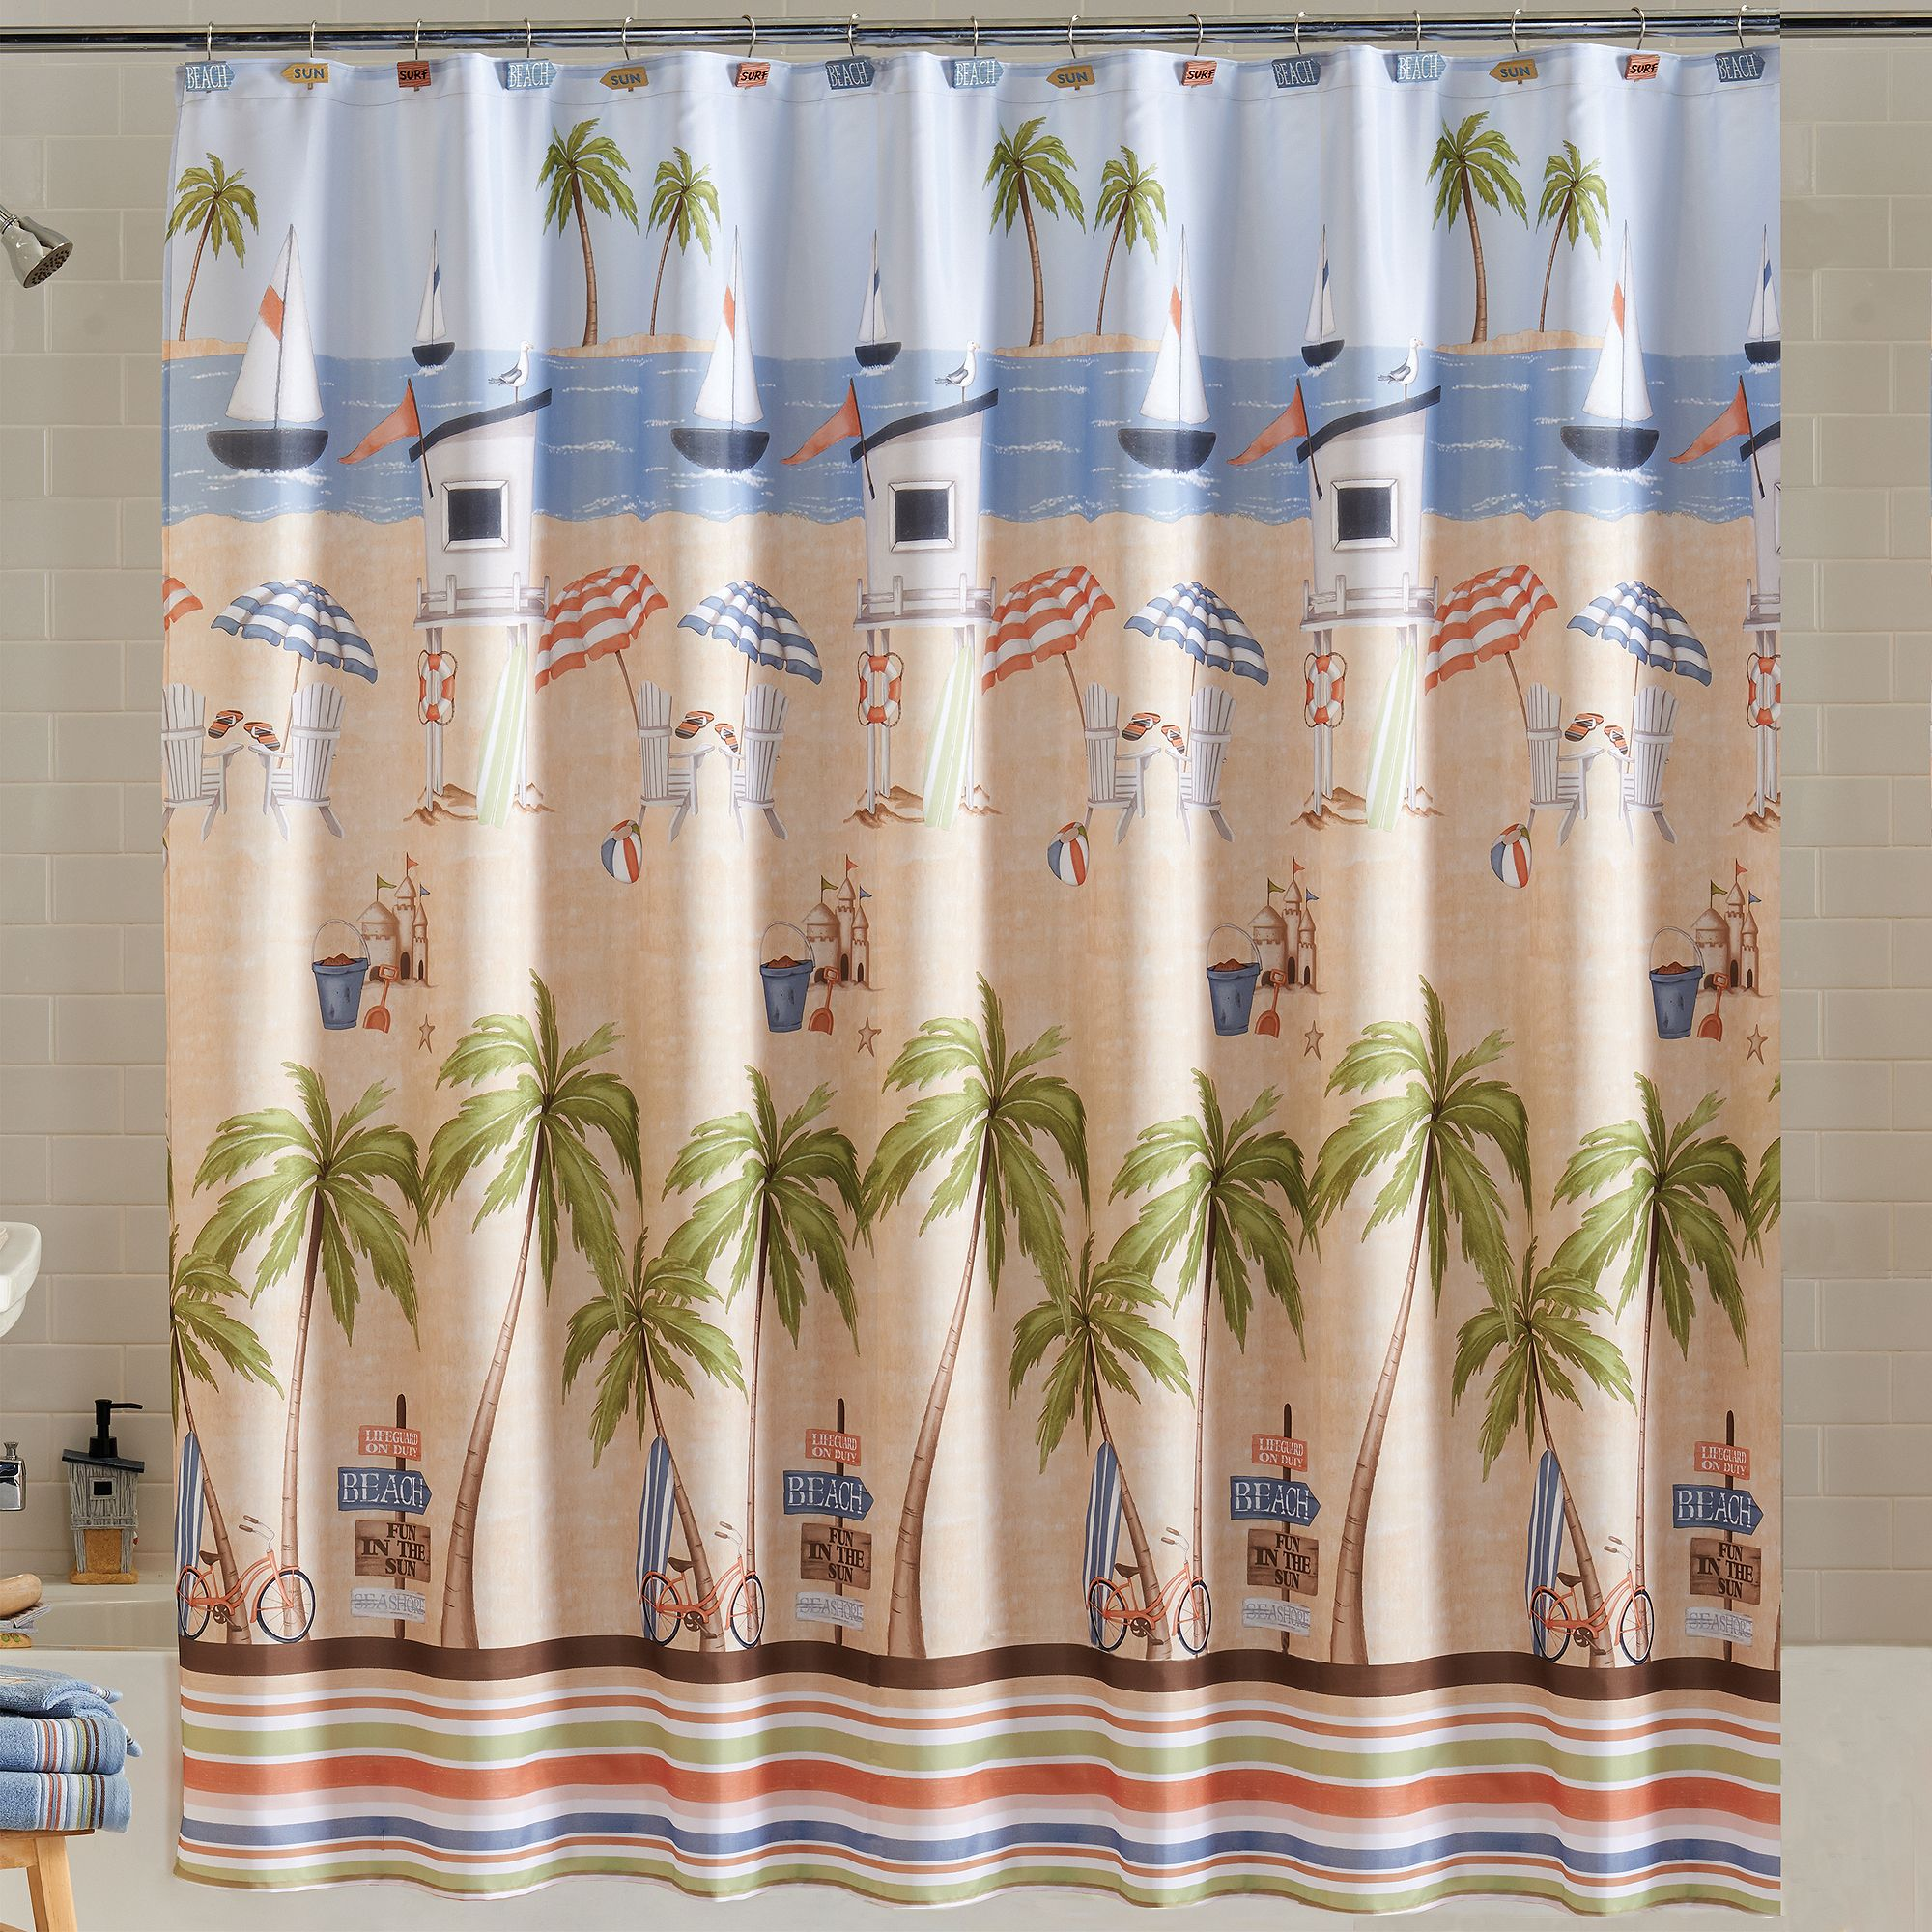 Mint green shower curtain and rugs - Mainstays Catching Rays Fabric Shower Curtain